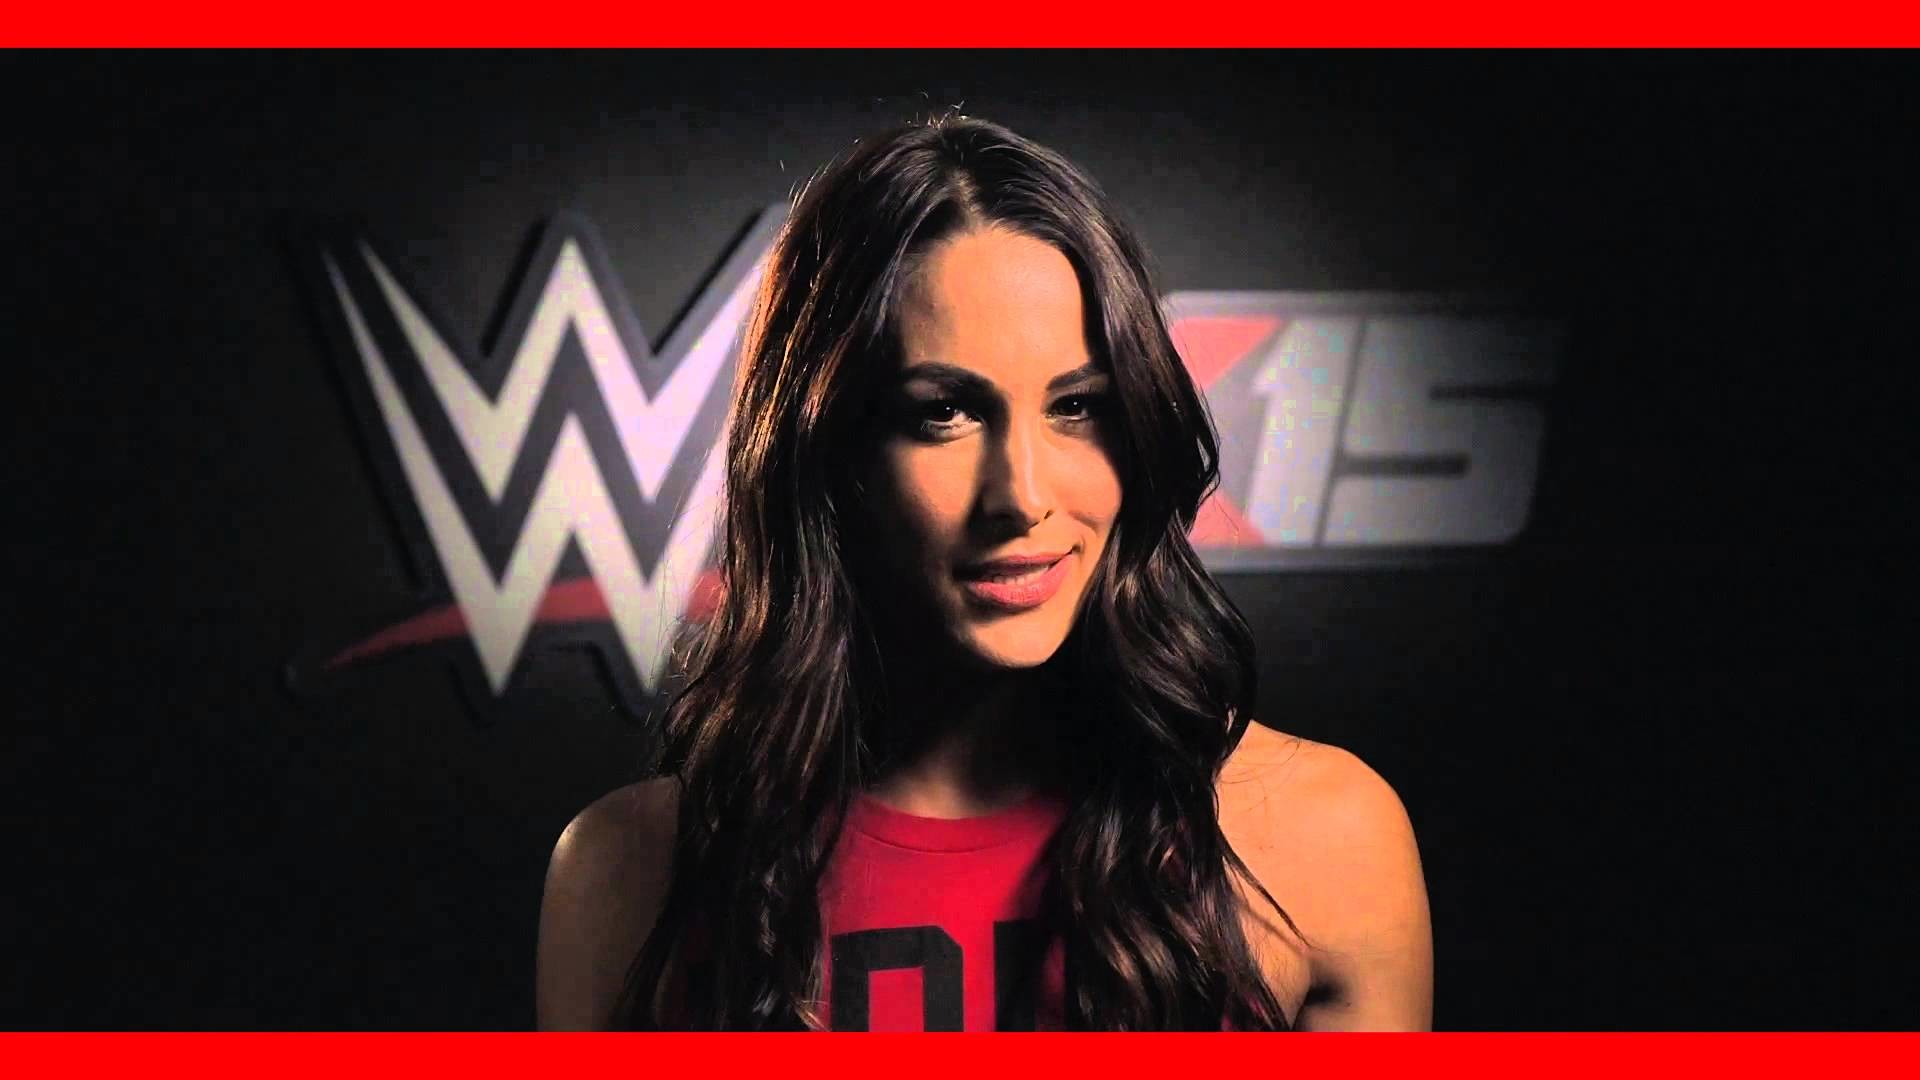 1920x1080 brie bella wwe 2k15 Car Pictures